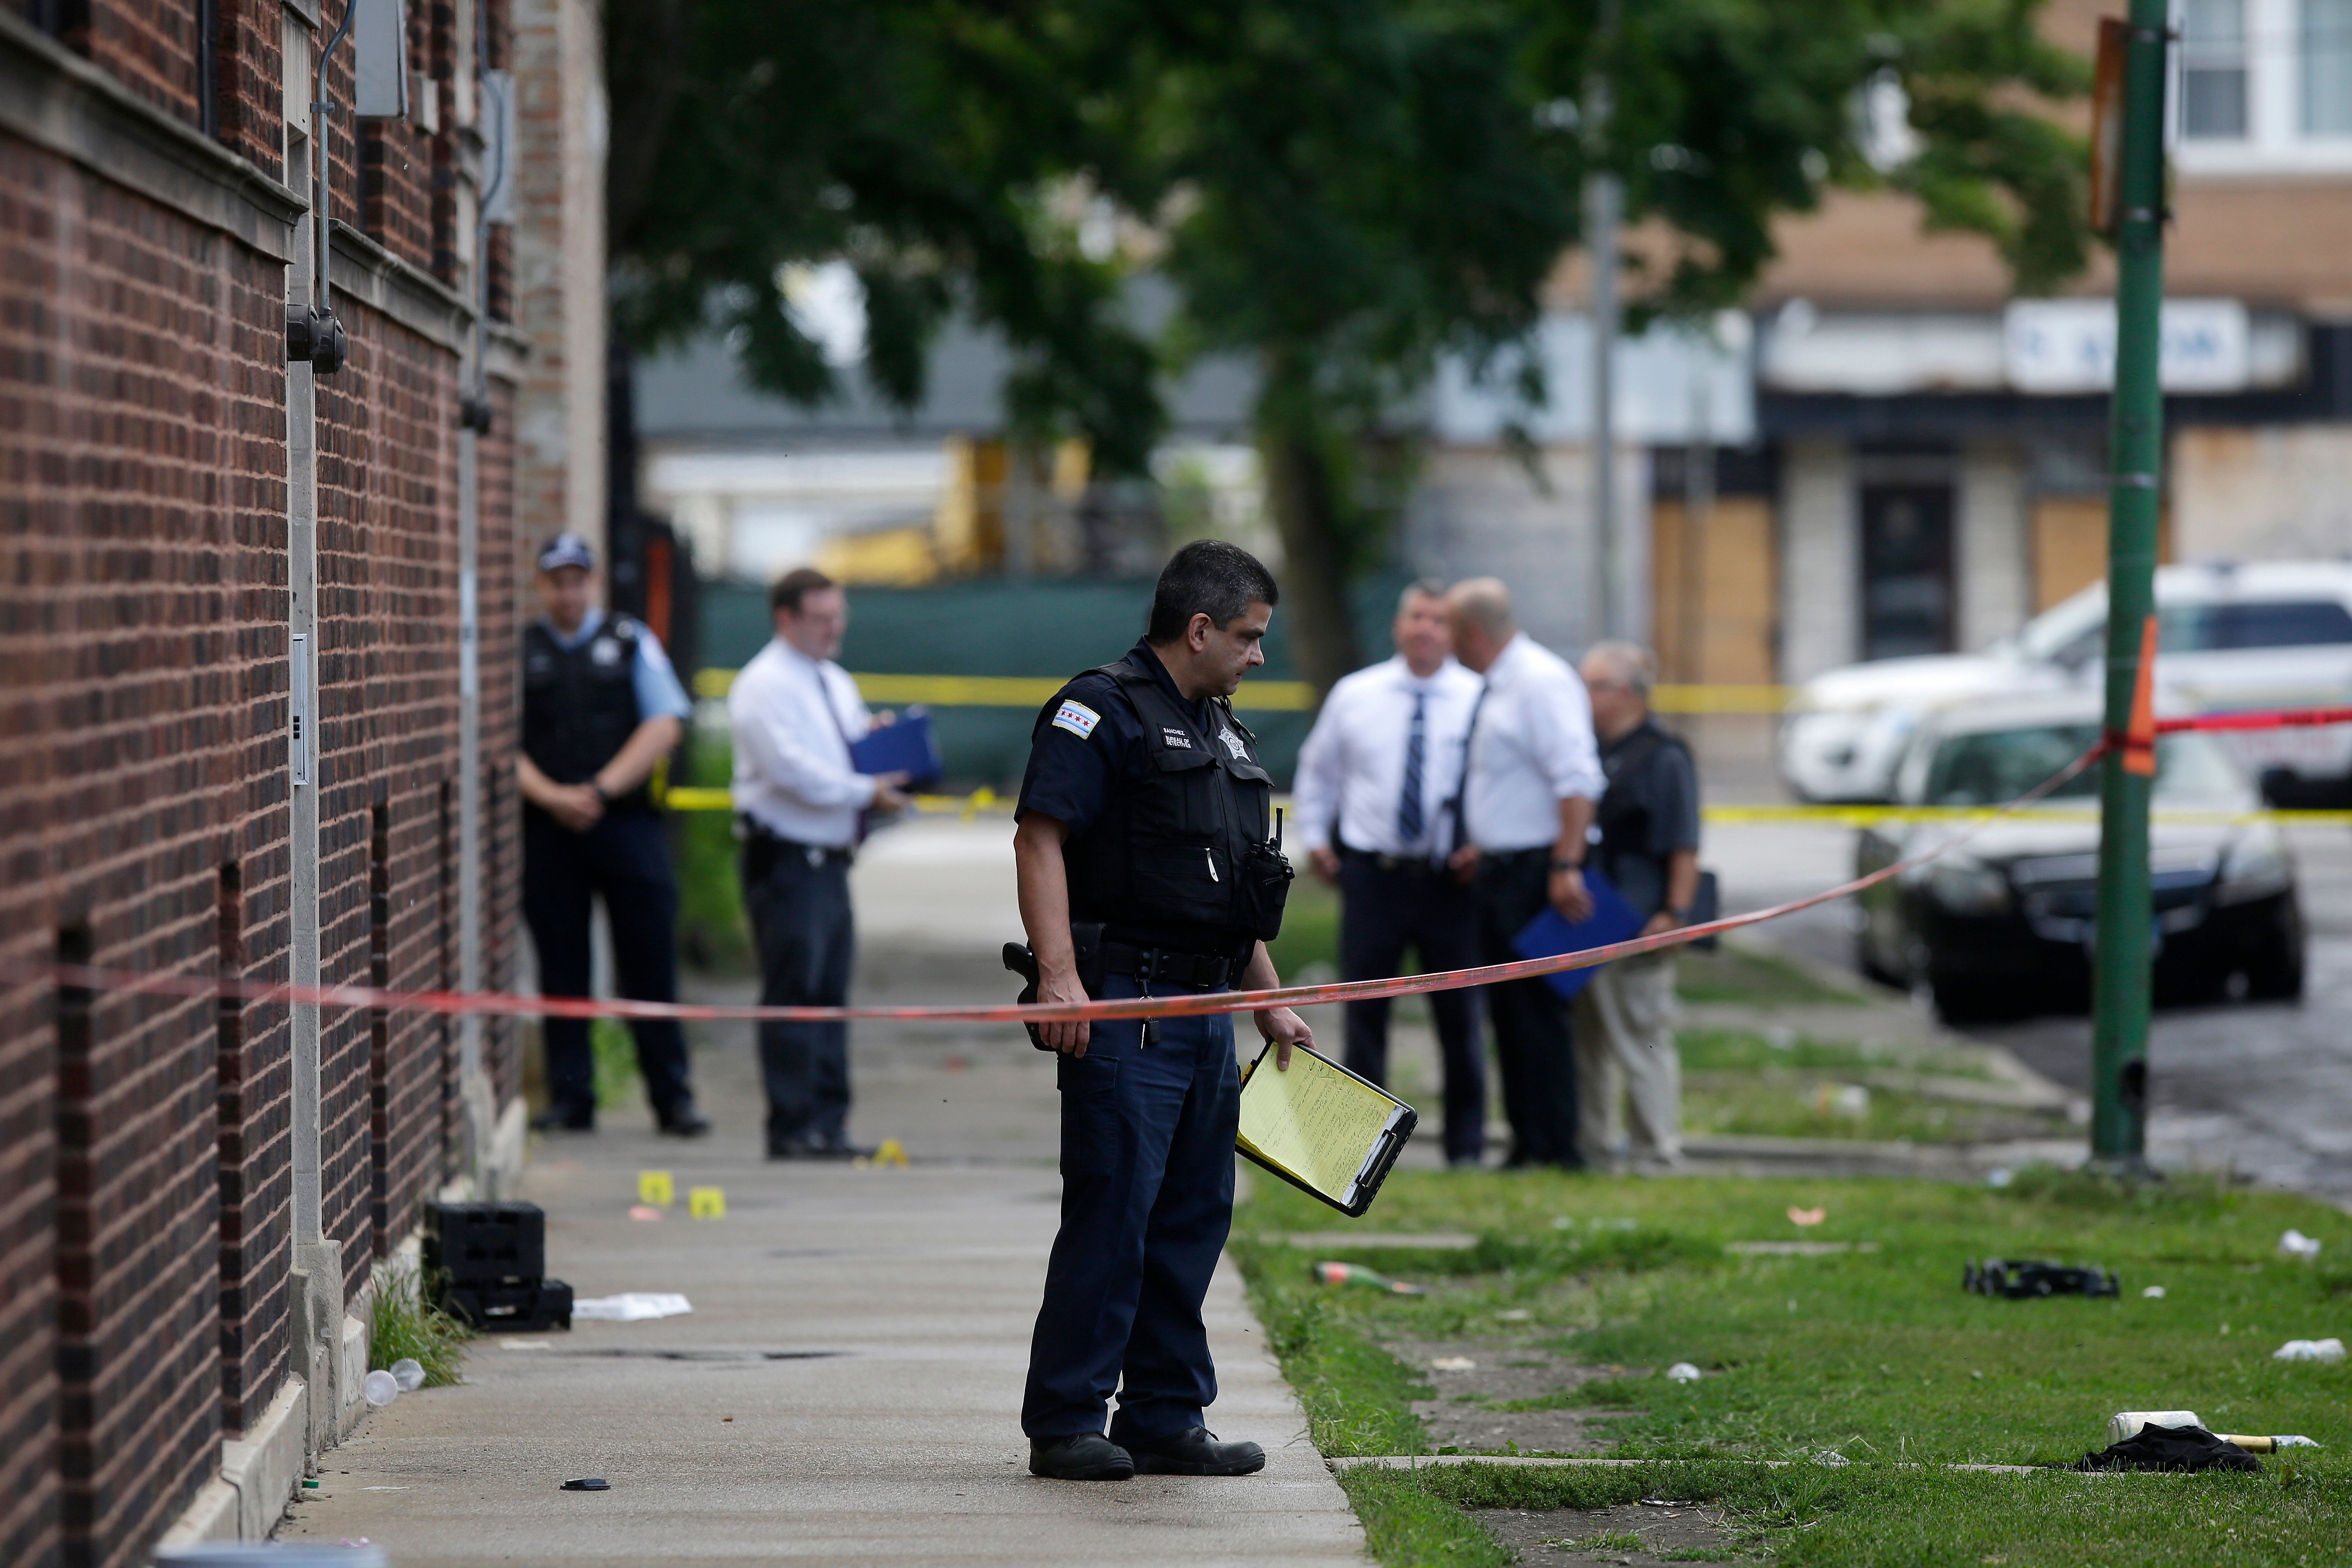 Chicago police officers and detectives investigate a shooting where multiple people were shot on Sunday.